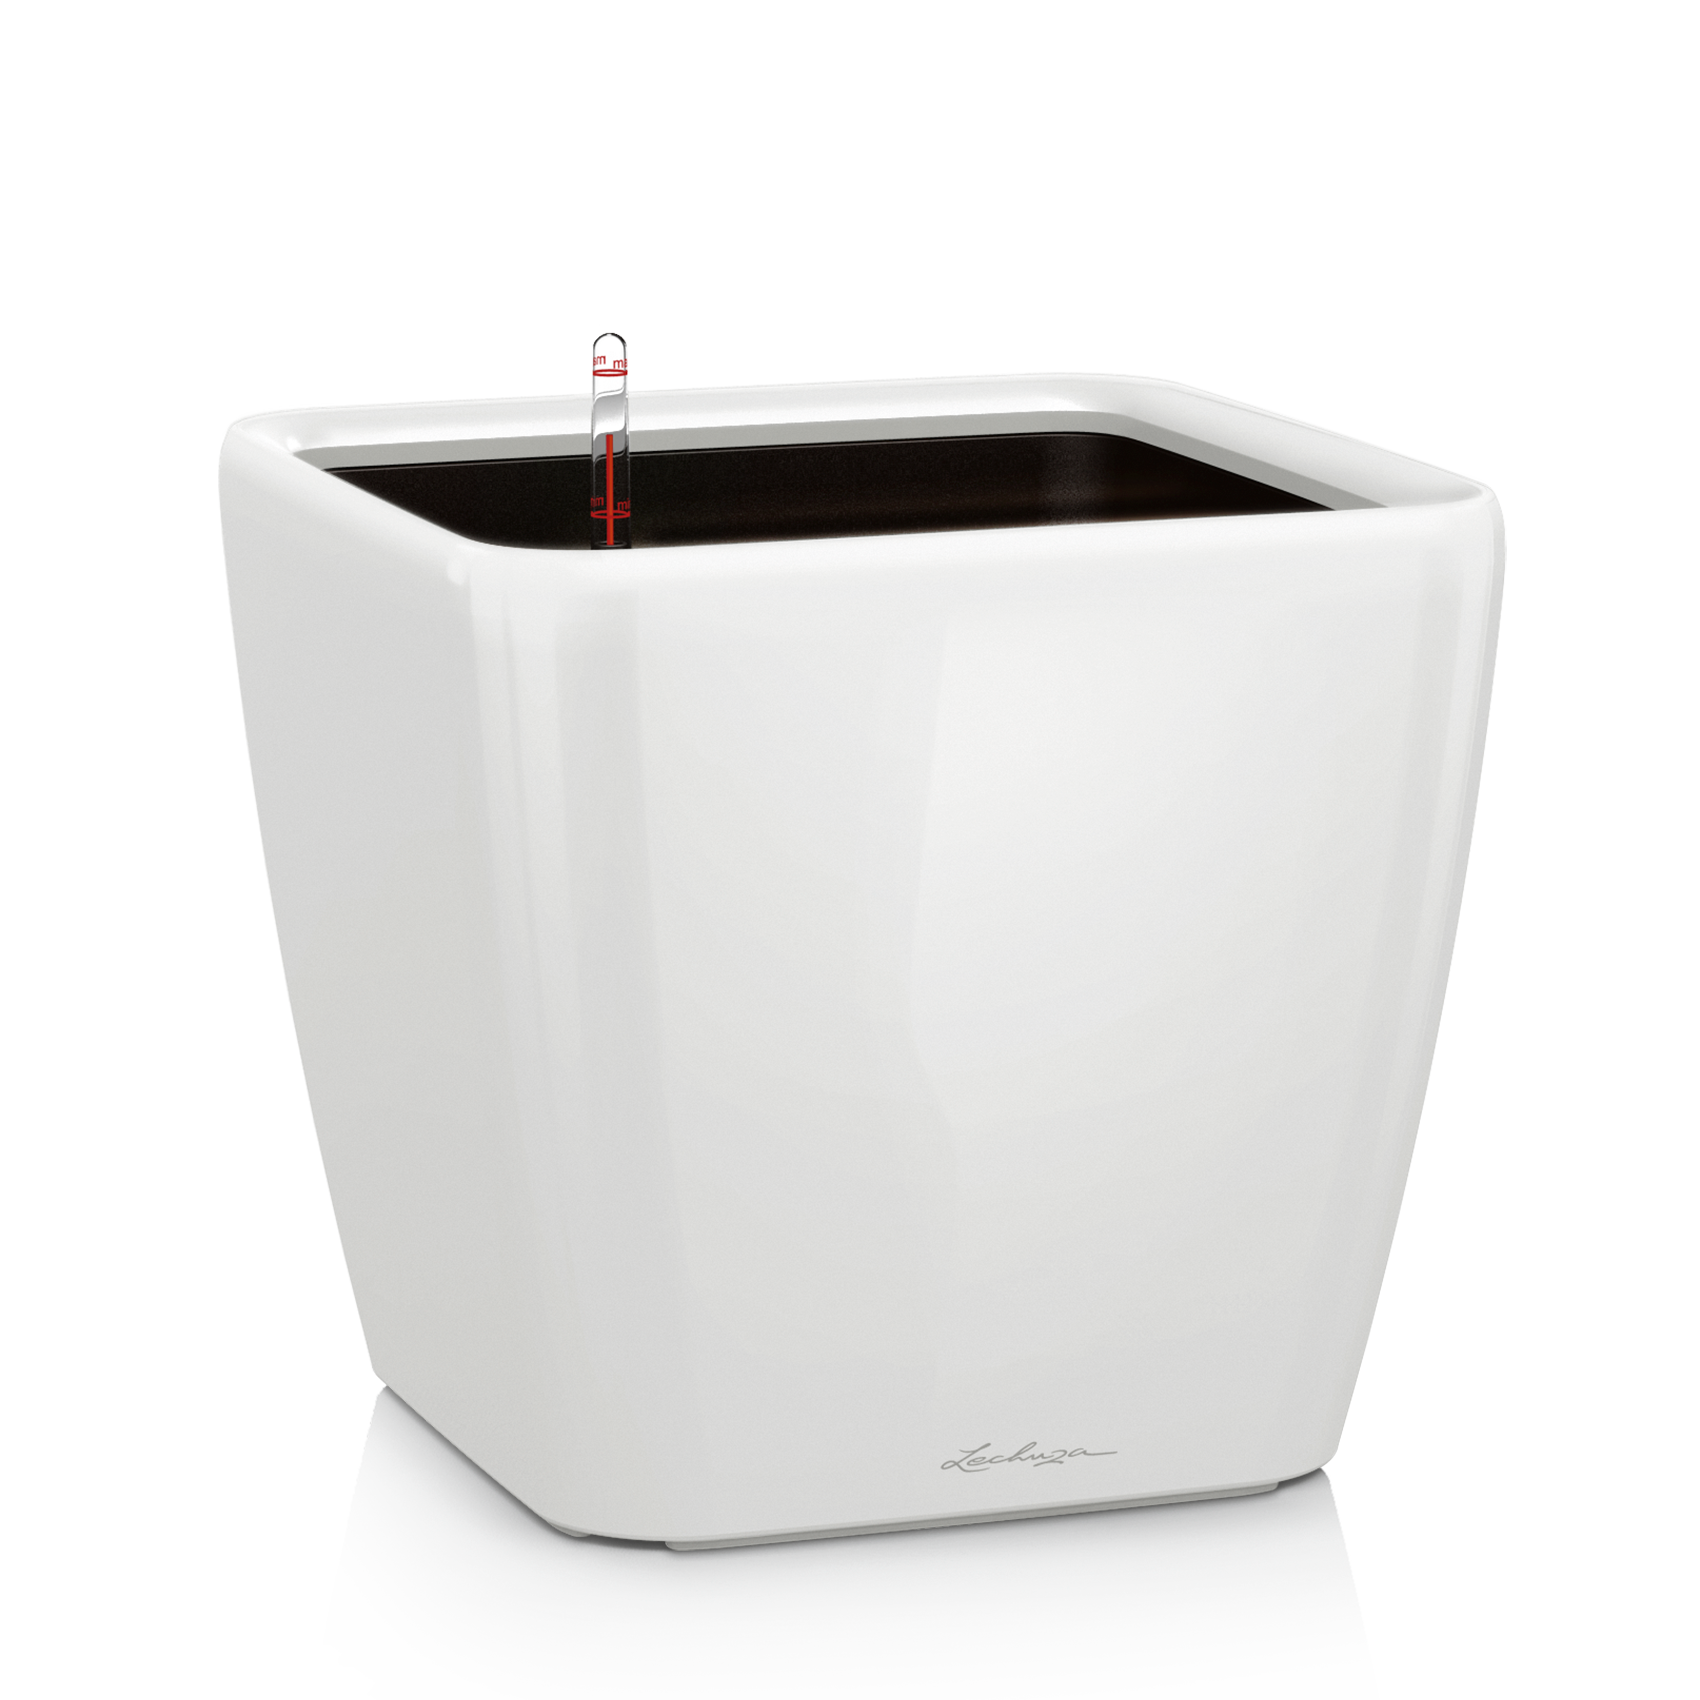 QUADRO LS 35 white high-gloss